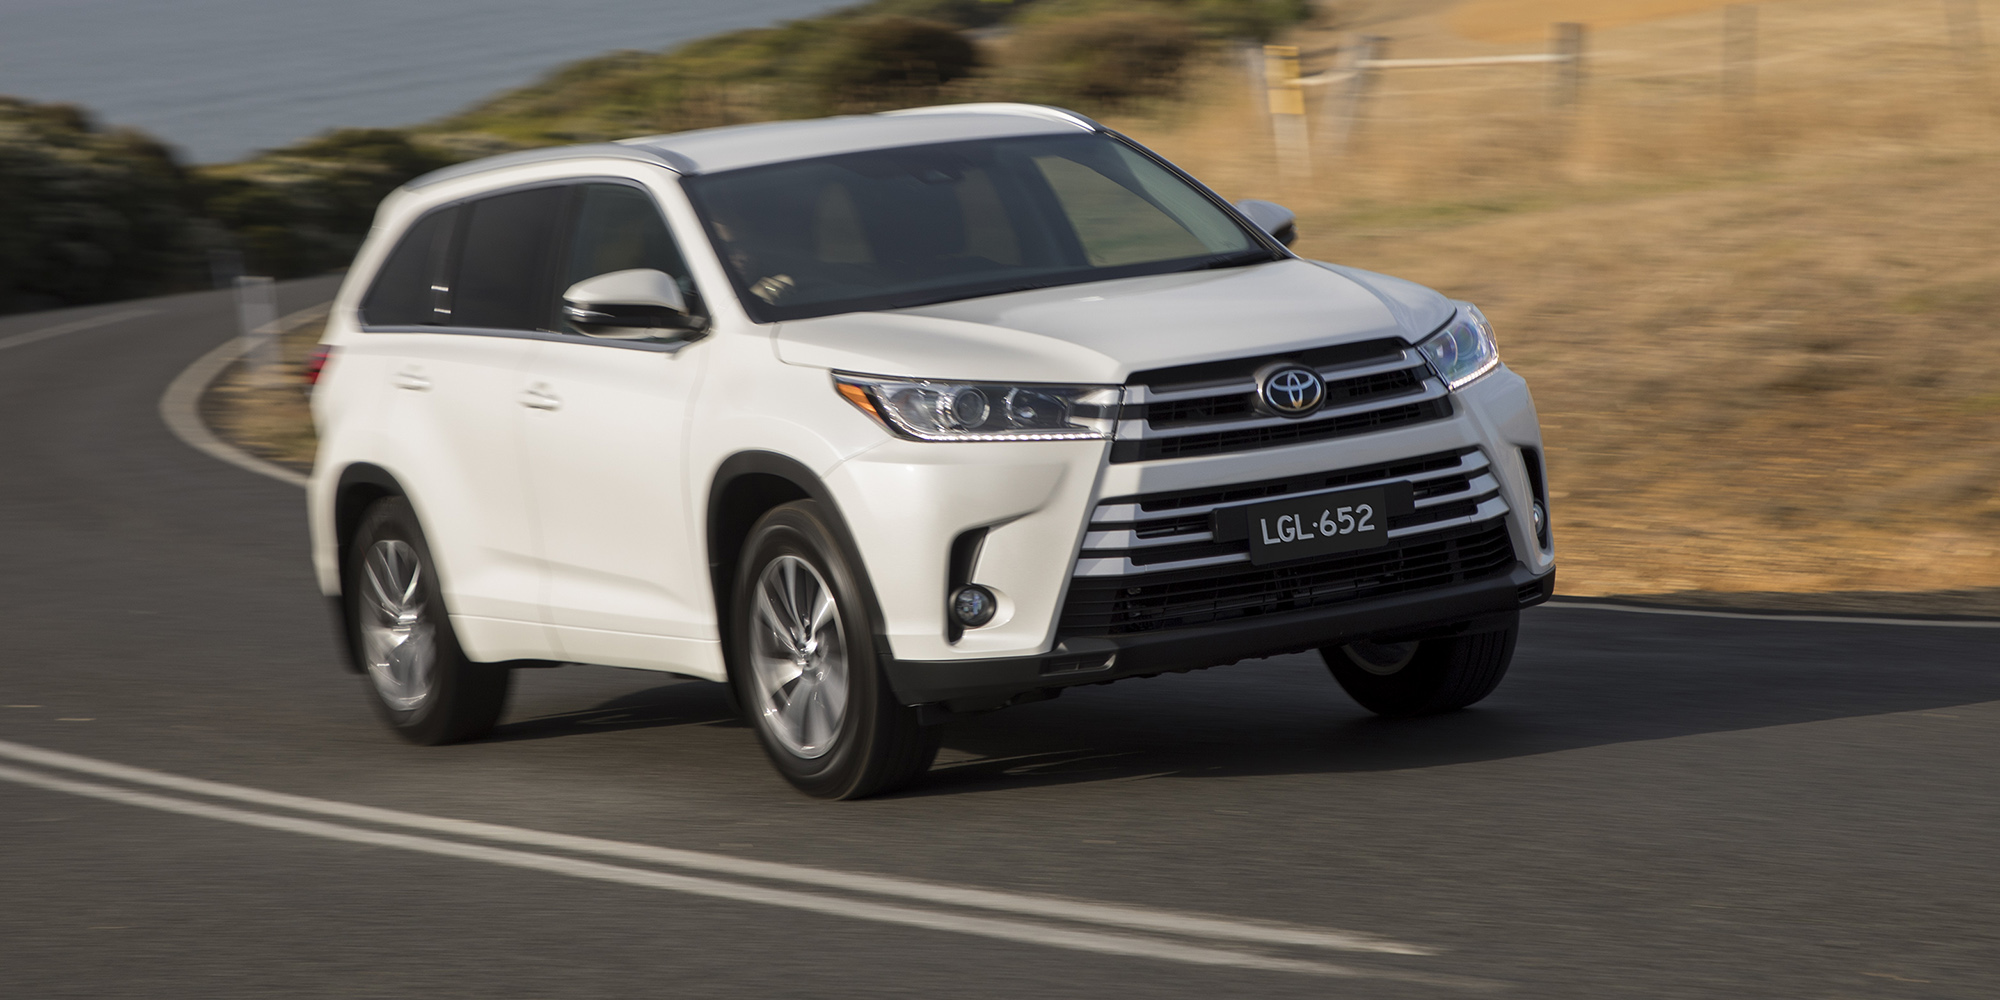 2018 Toyota Kluger pricing and specs - Photos